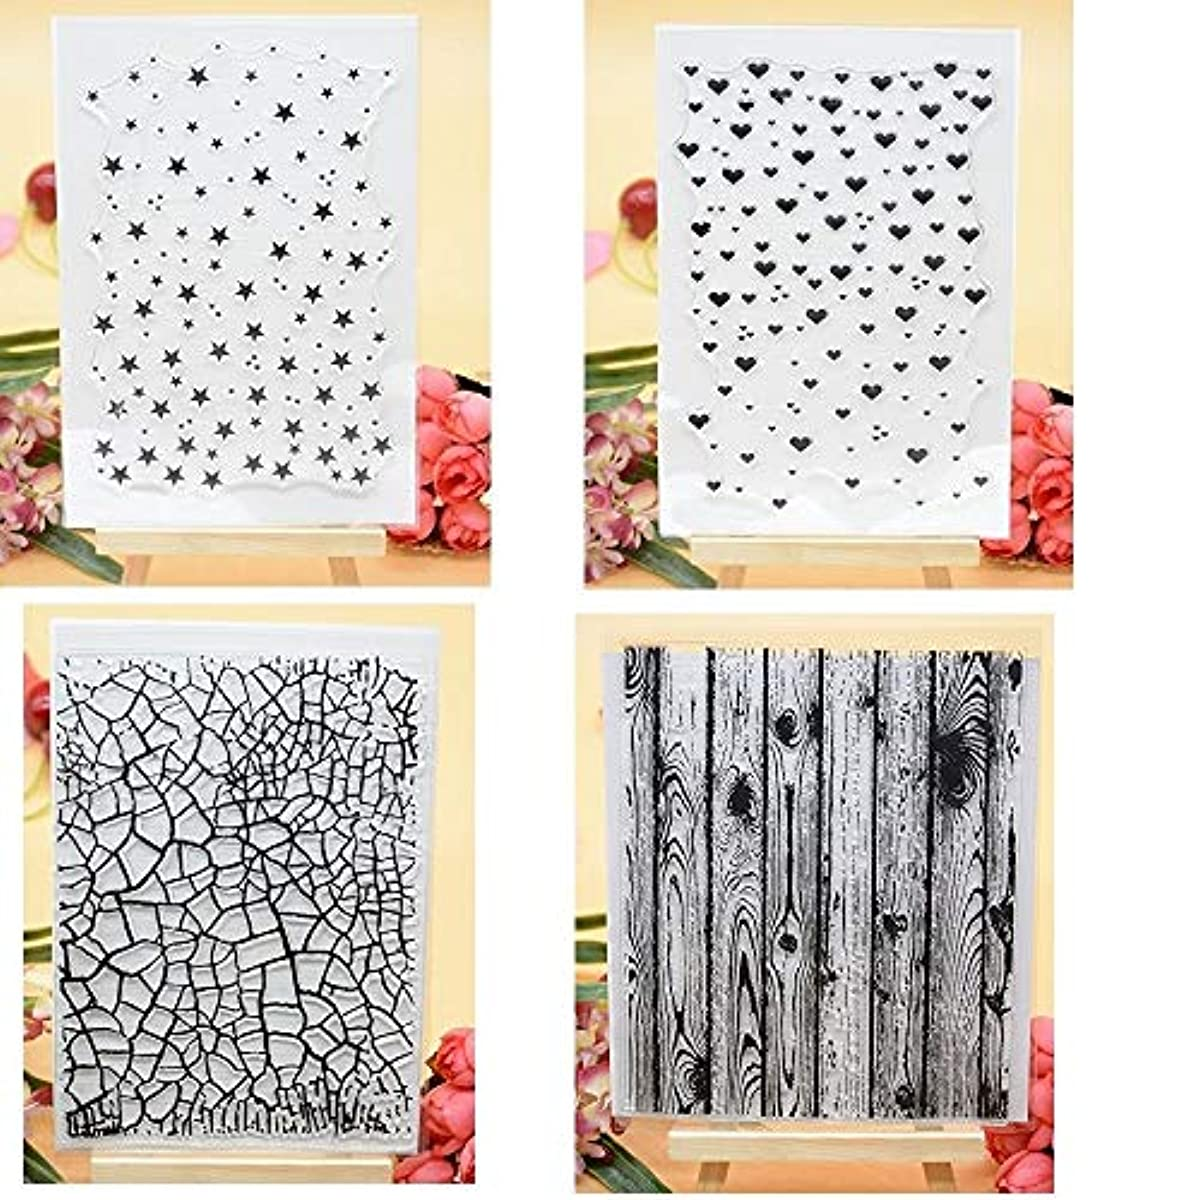 Welcome to Joyful Home 4pcs/Set Star Heart Background Rubber Clear Stamp for Card Making Decoration and Scrapbooking